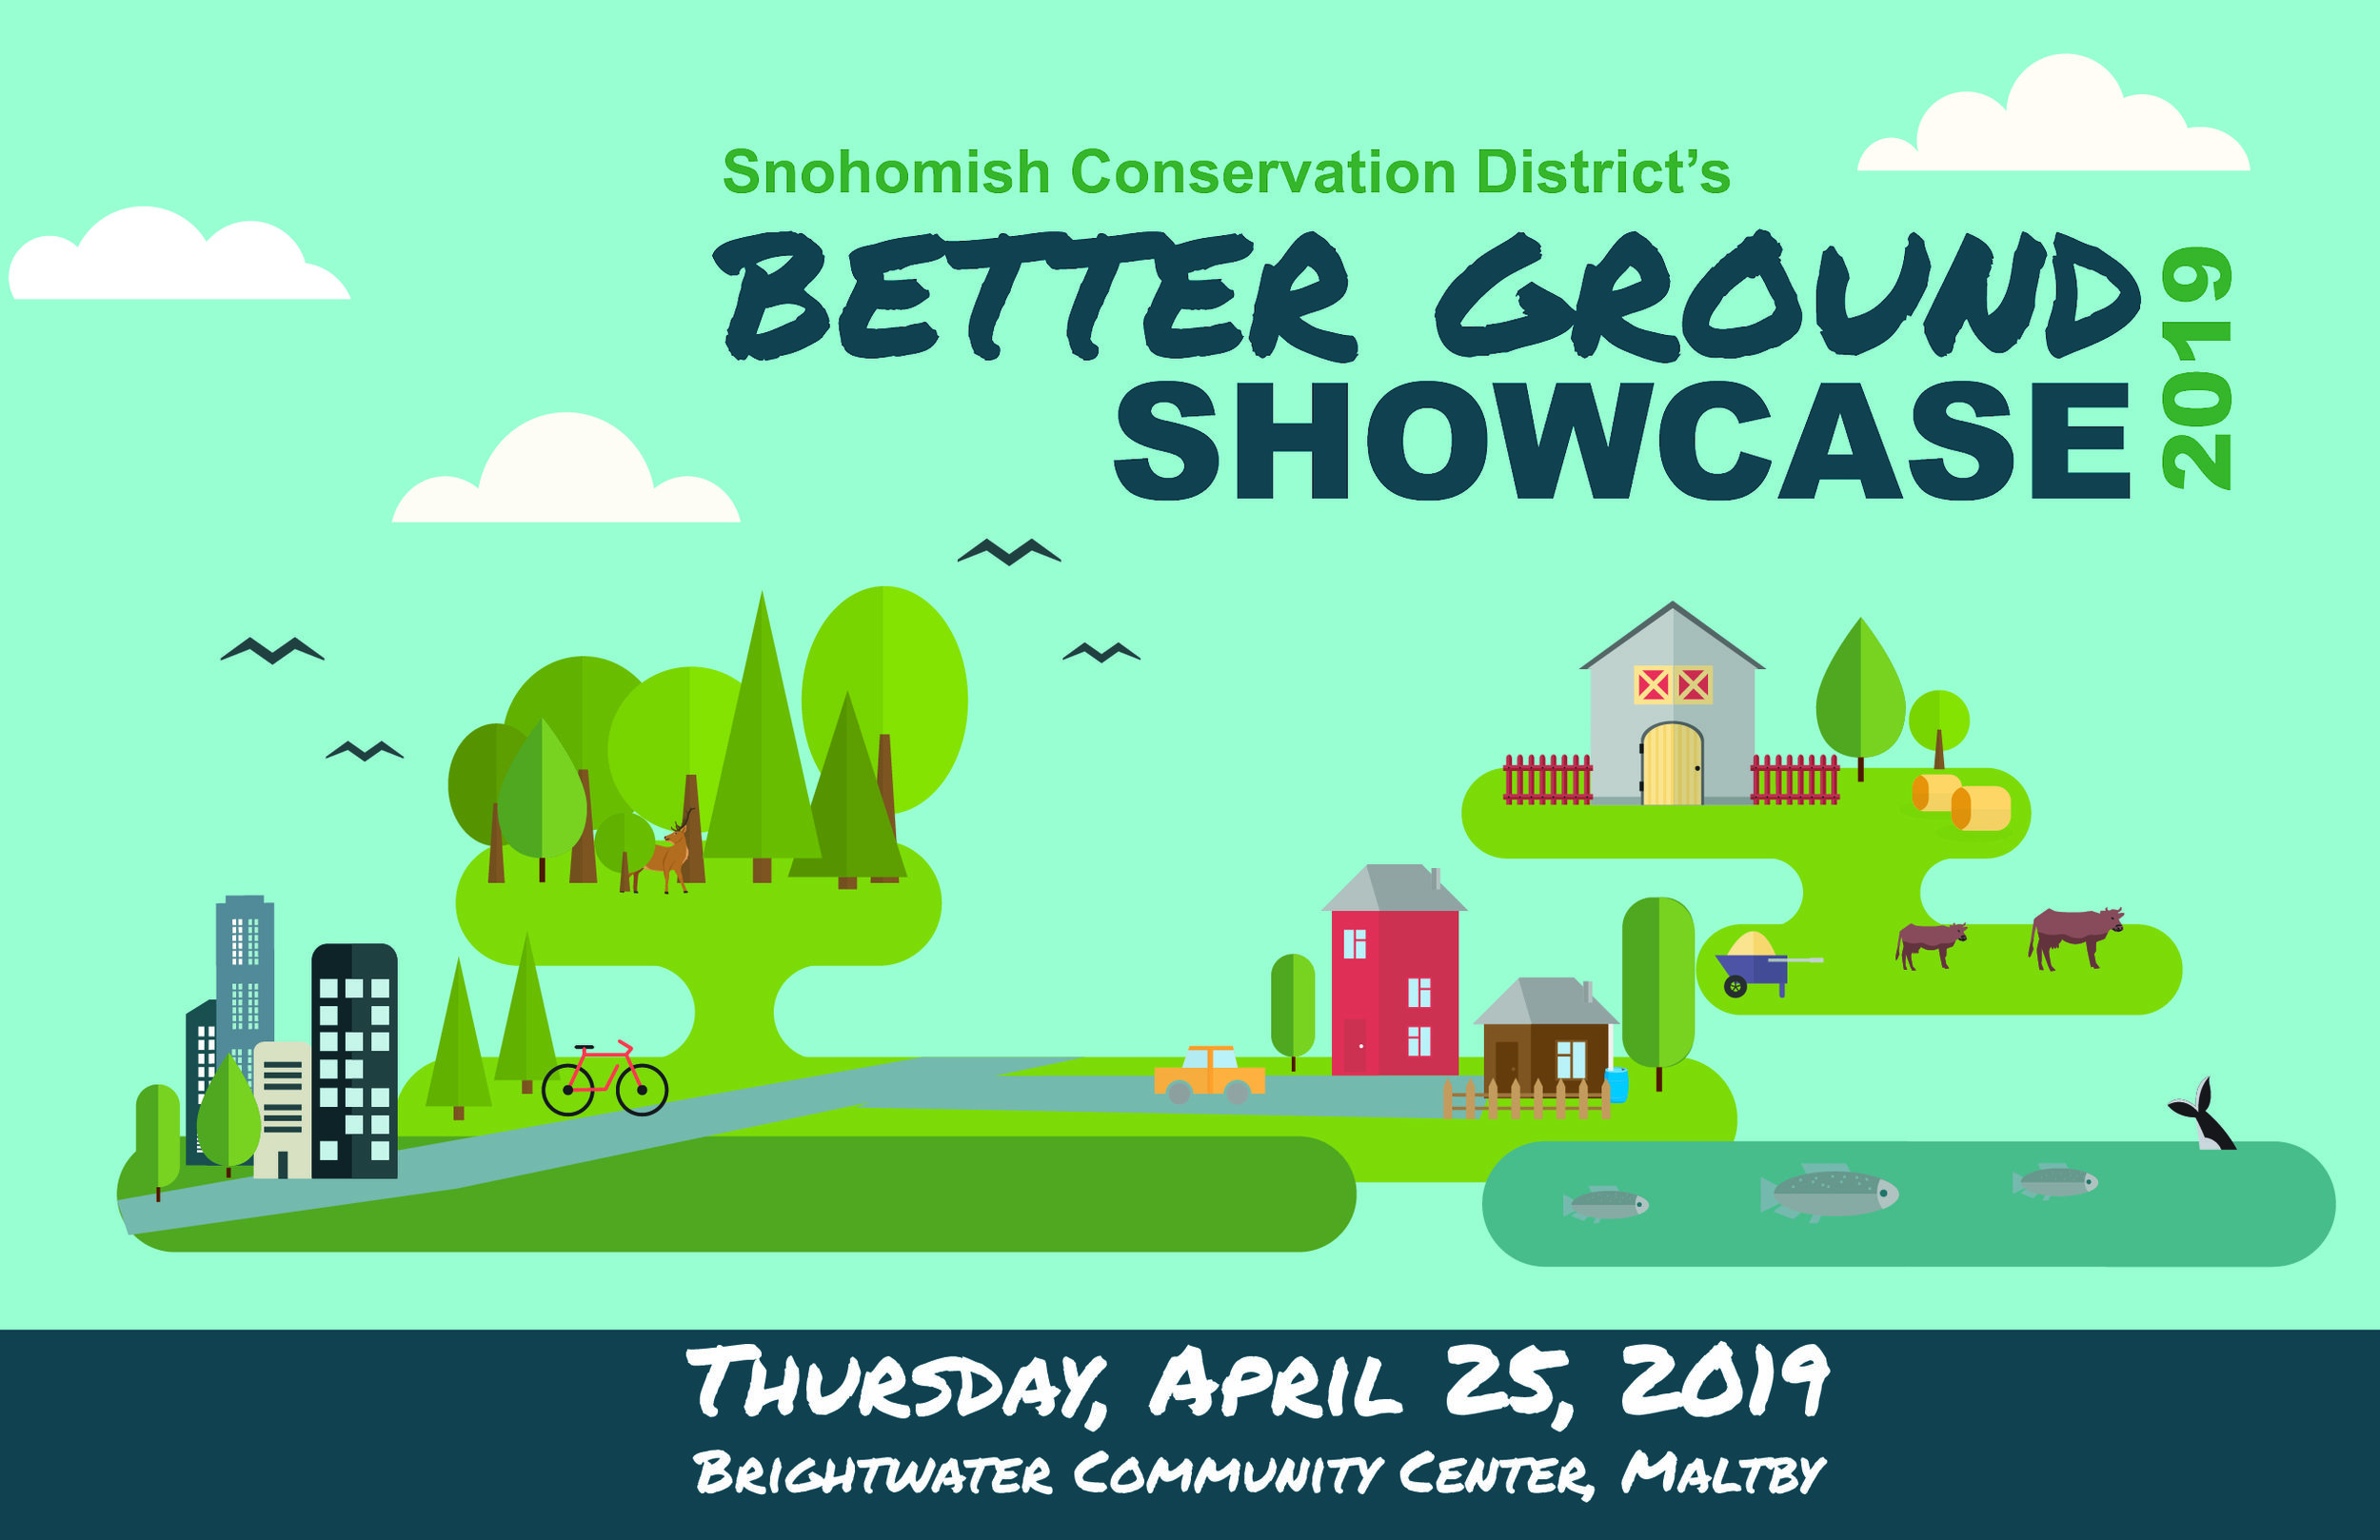 Download and read our Better Ground Showcase program